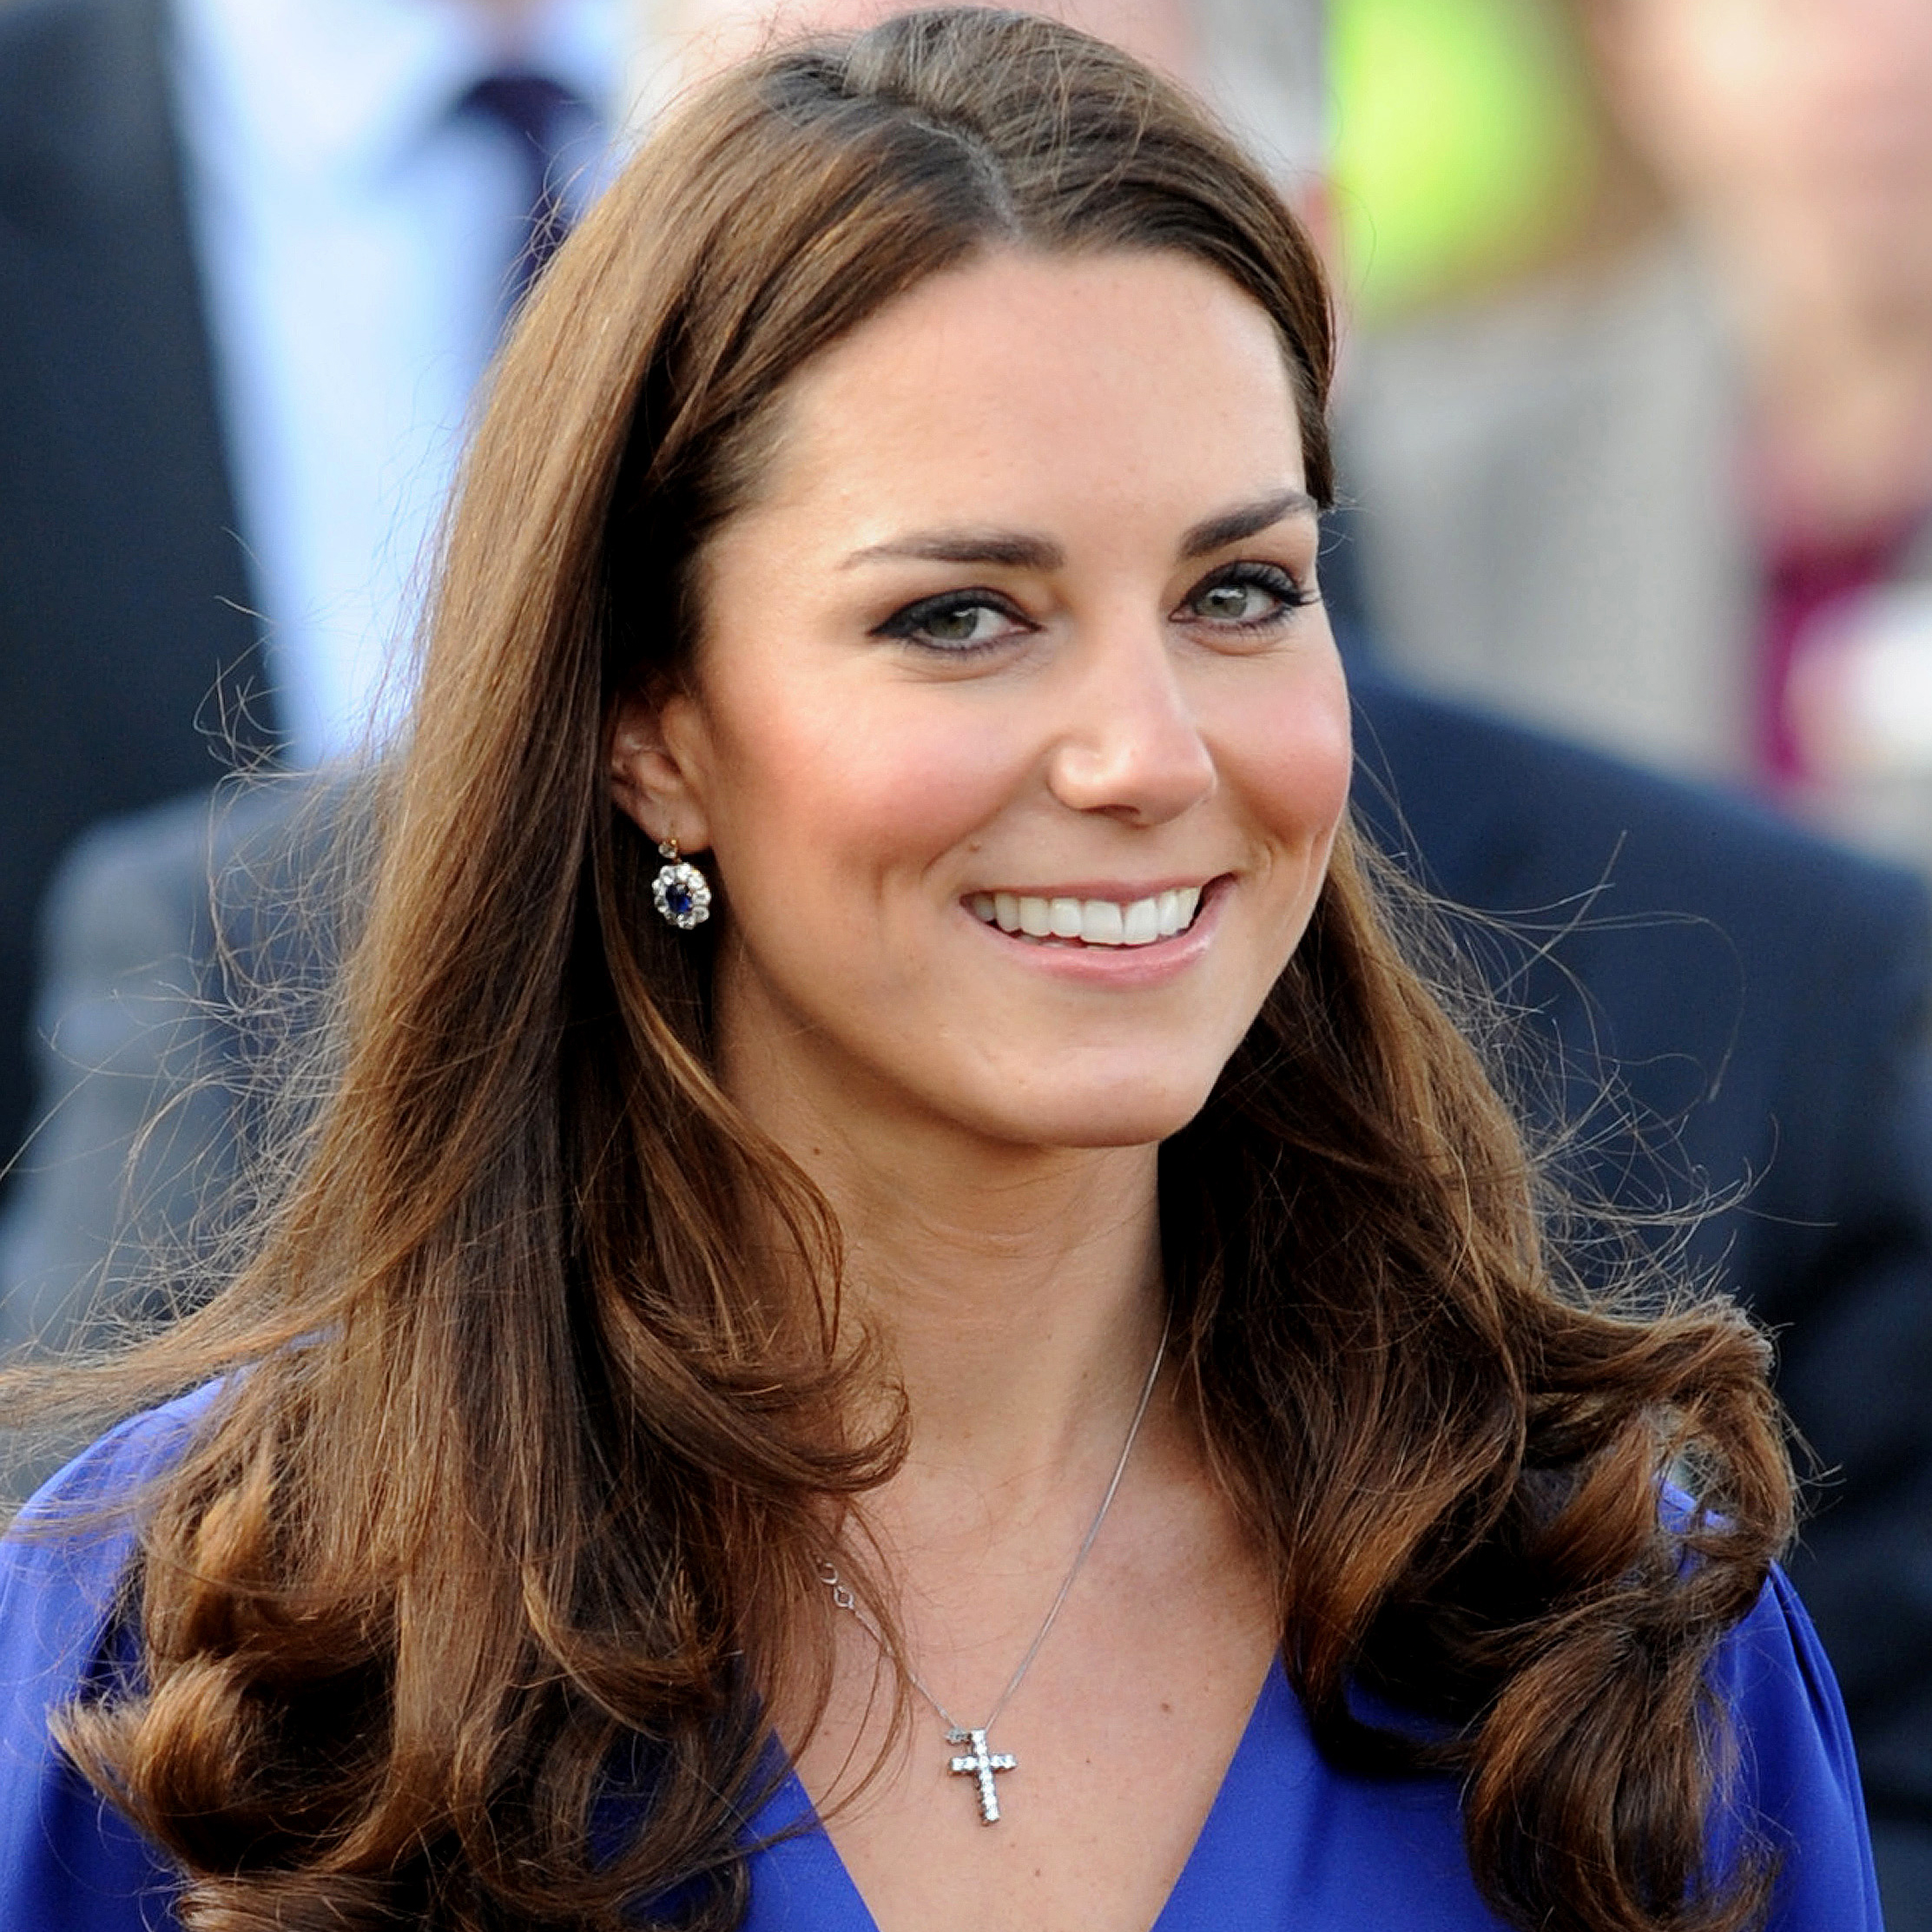 https://i0.wp.com/media4.popsugar-assets.com/files/2012/04/16/3/192/1922153/f5b638a283e078ff_Kate-Middleton/i/Kate-Middleton.jpg